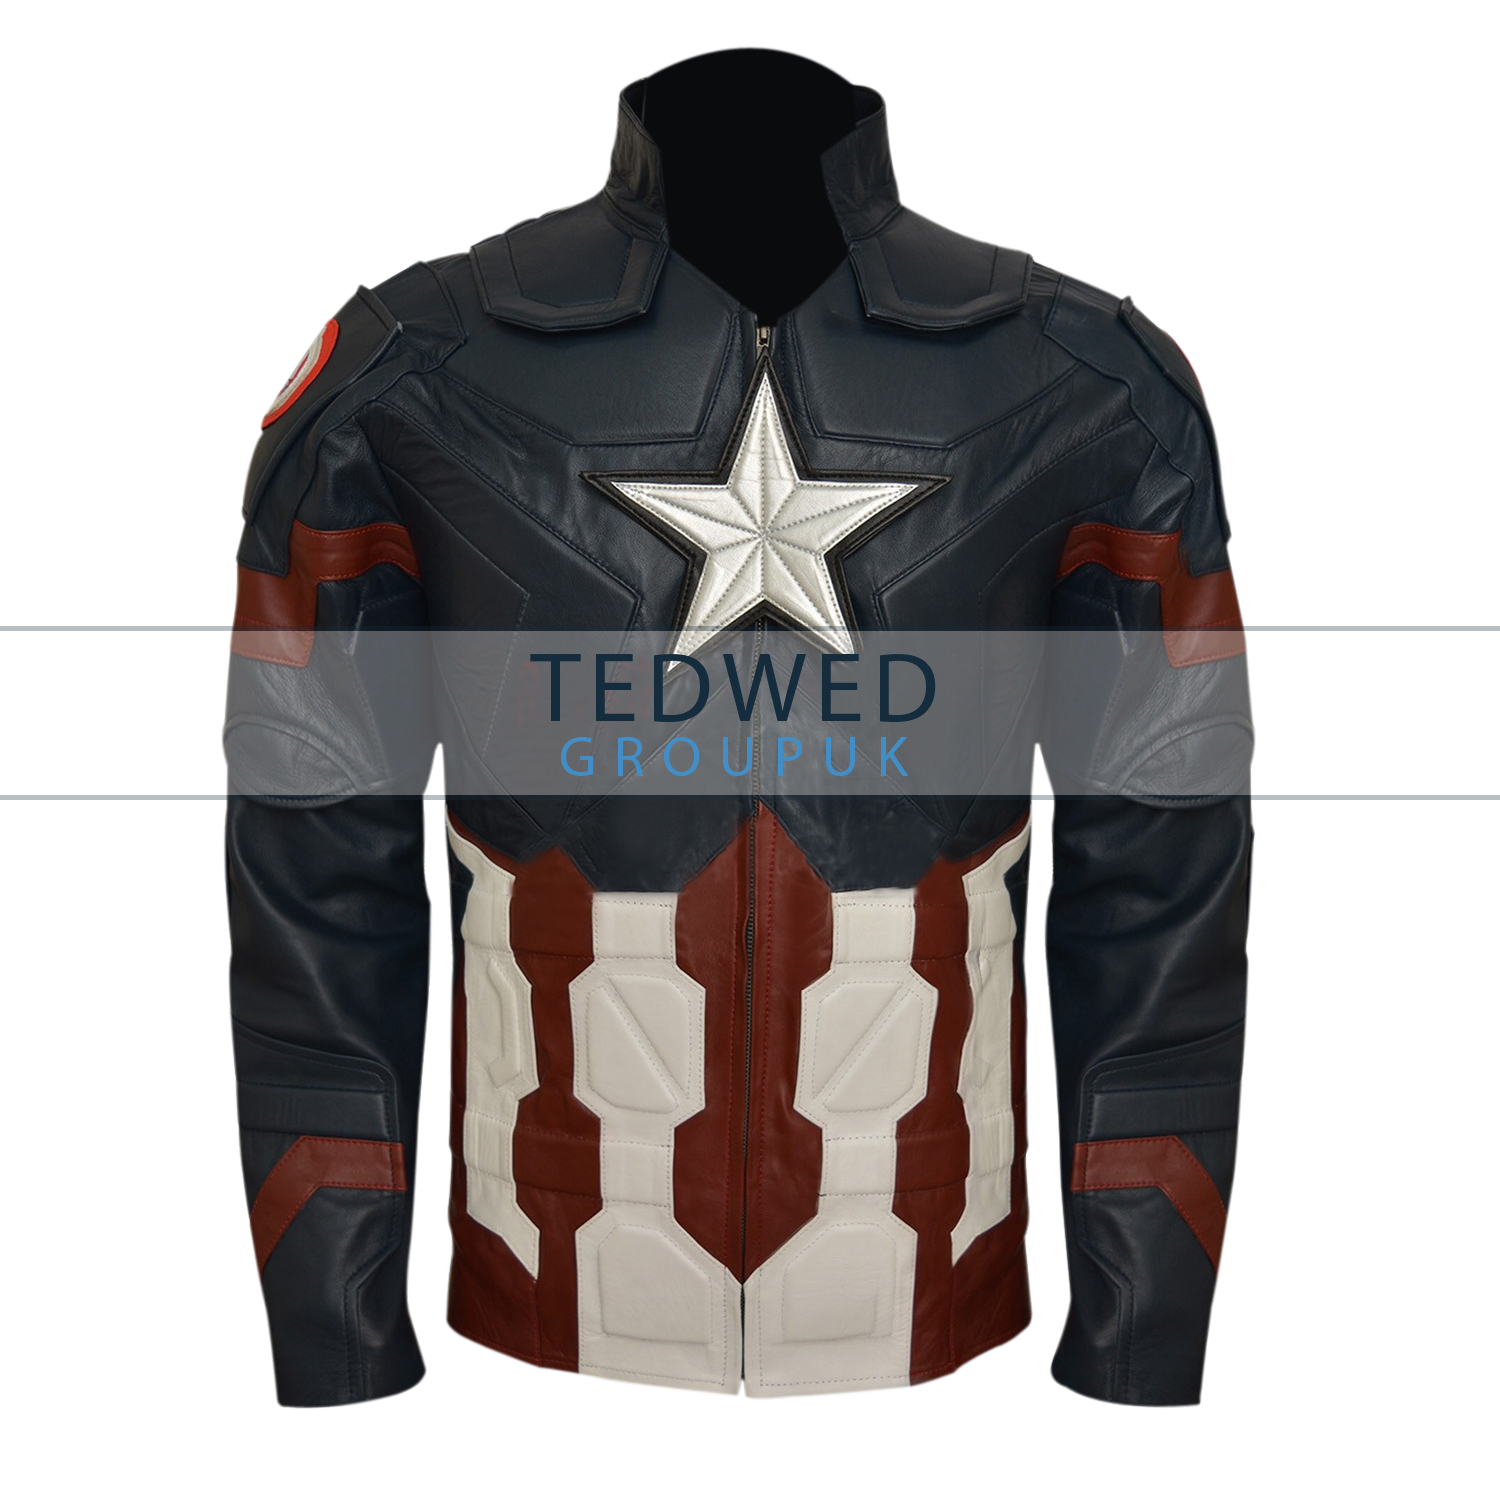 Chris Evans Captain America Civil War Jacket 2016